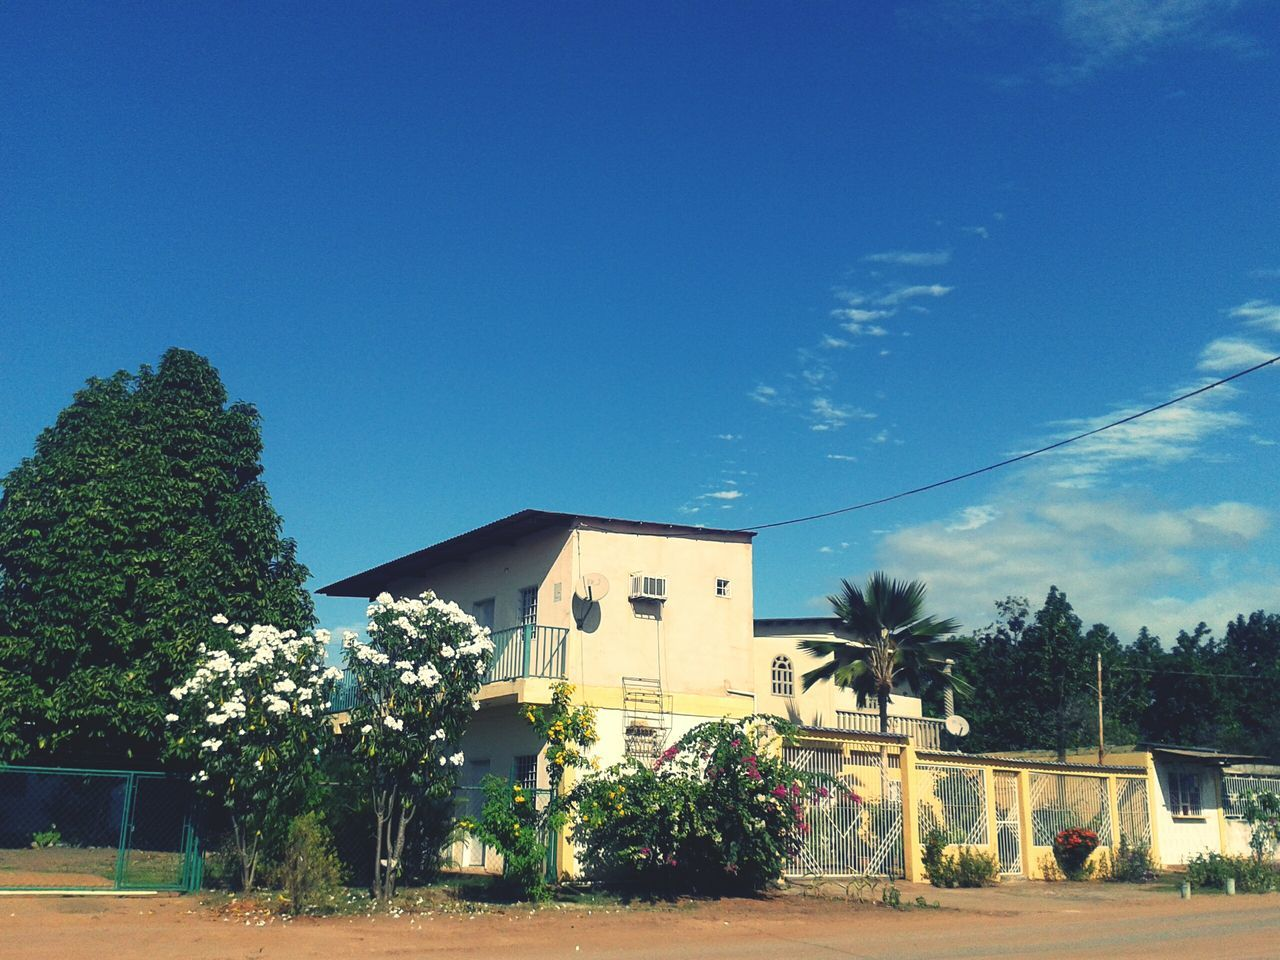 built structure, architecture, tree, house, building exterior, day, sky, blue, no people, outdoors, plant, clear sky